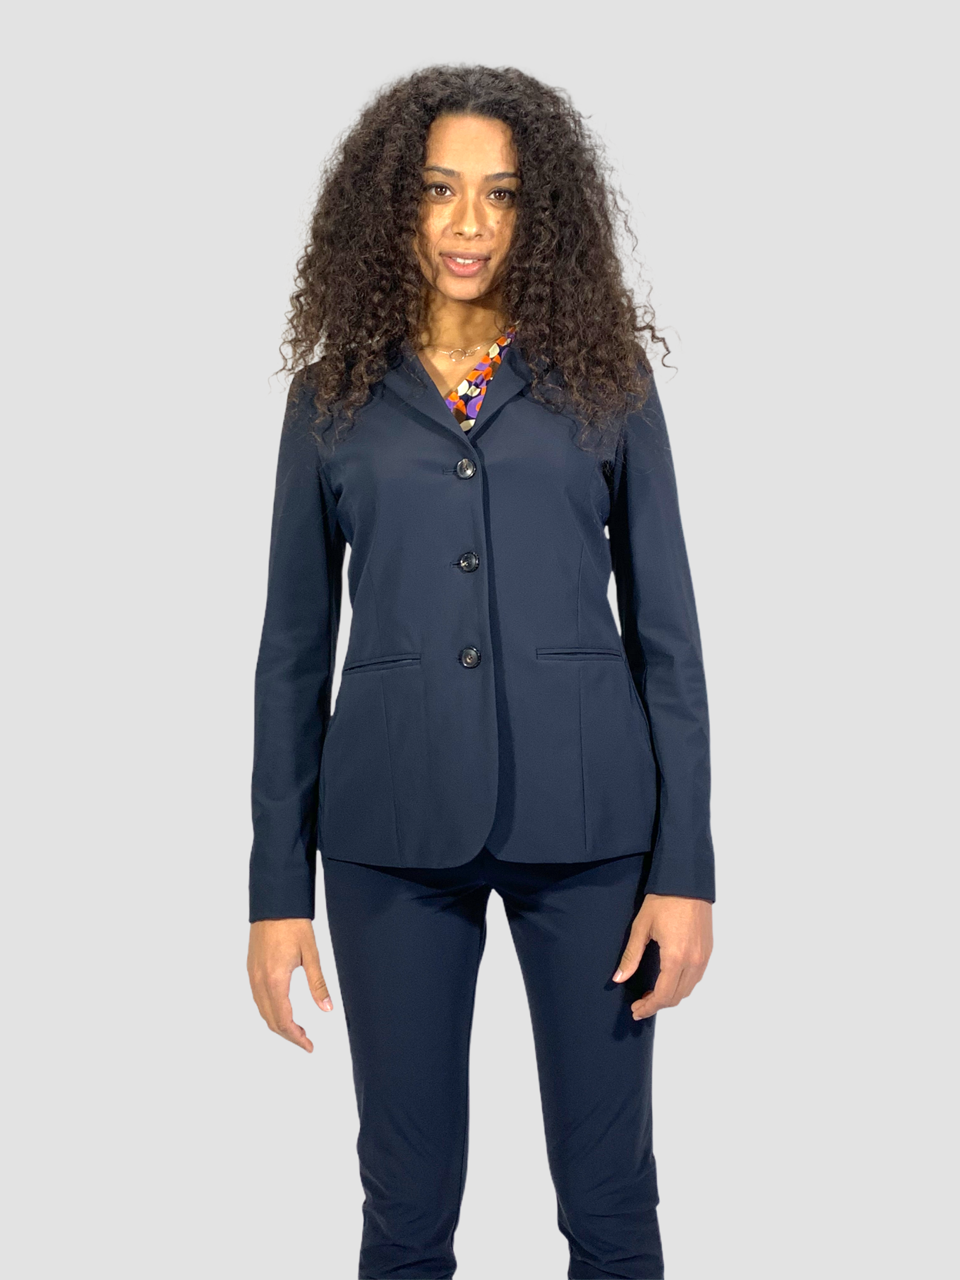 SHOPPING ON LINE RRD ROBERTO RICCI DESIGNS BLAZER LADY NEW  COLLECTION  WOMEN'S  SPRING  SUMMER 2021